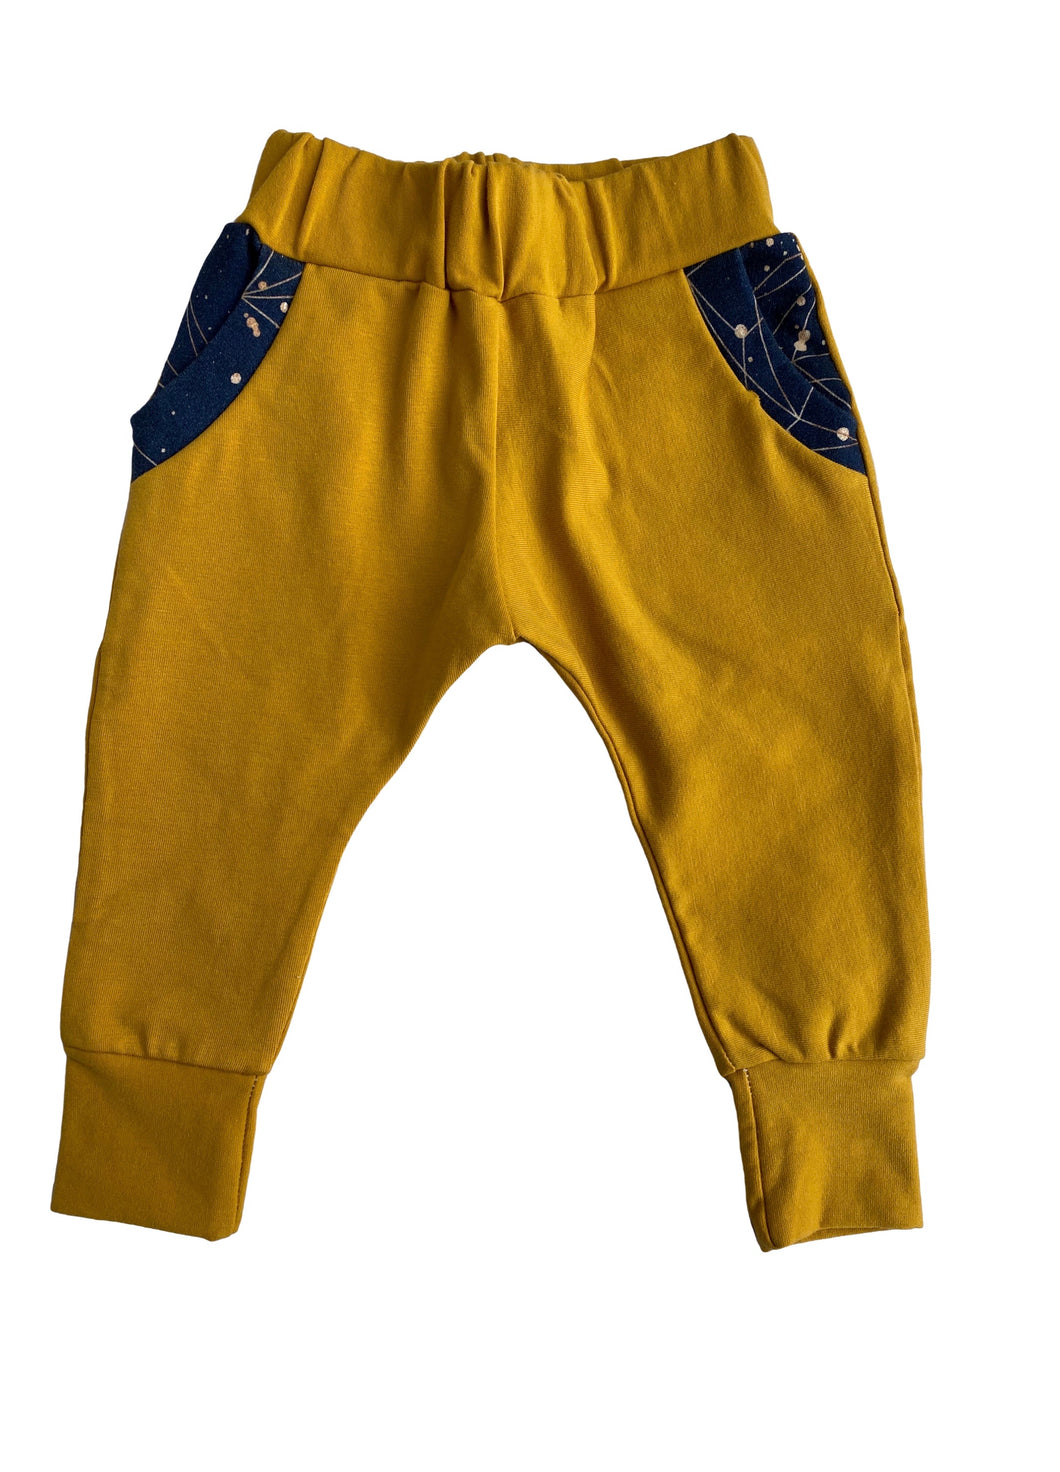 Harvest Gold & Guilded Space Joggers - RTS